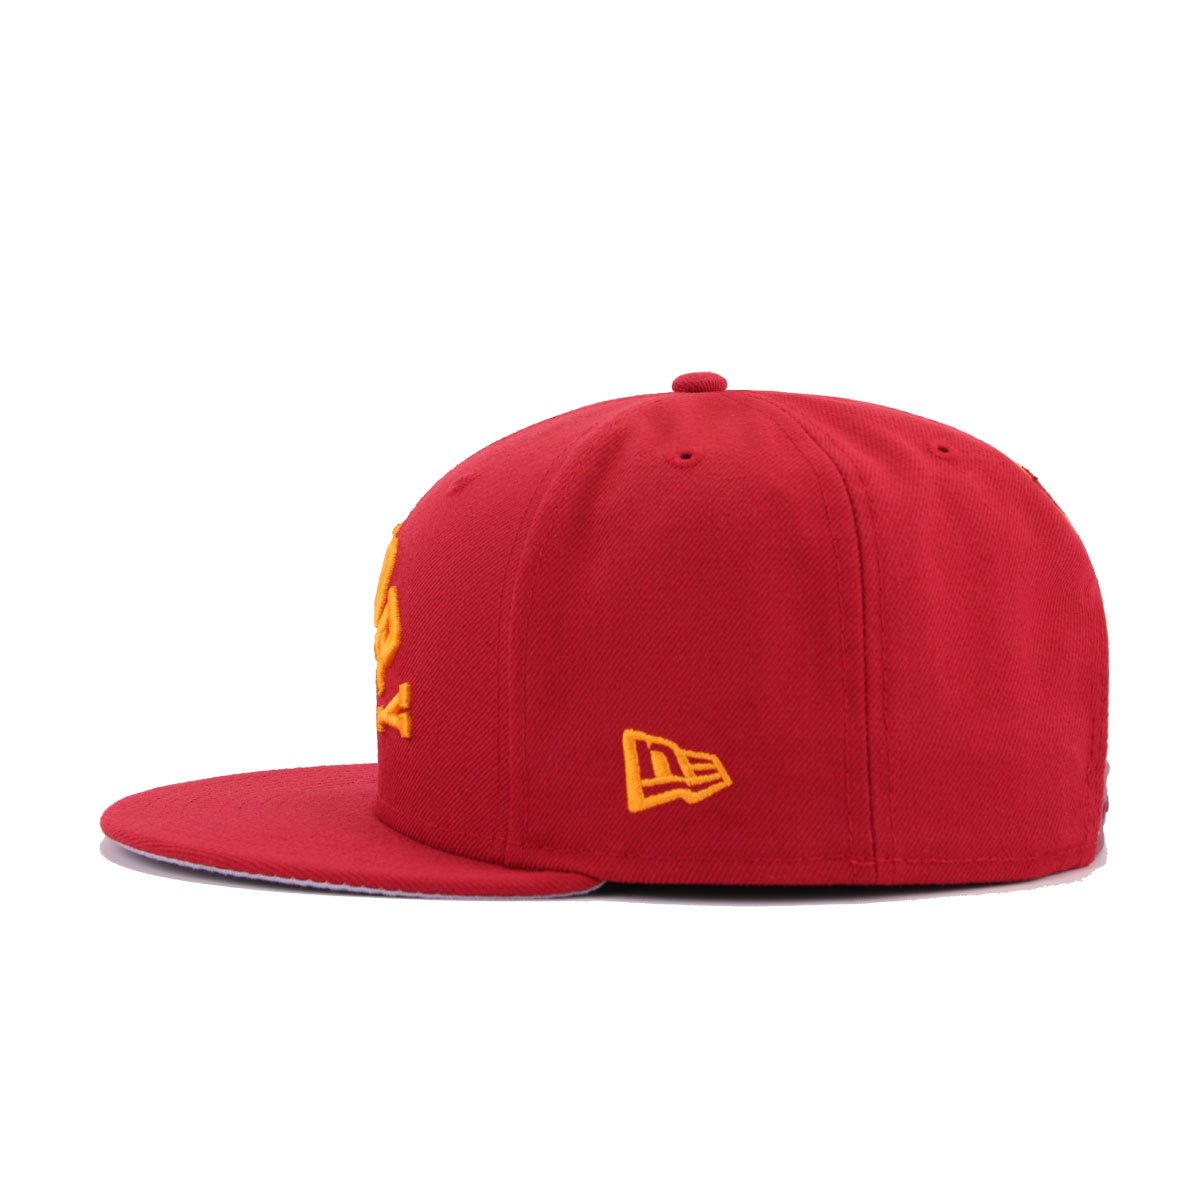 Indiana Pacers Pinot Red Hoosiers New Era 9Fifty Snapback